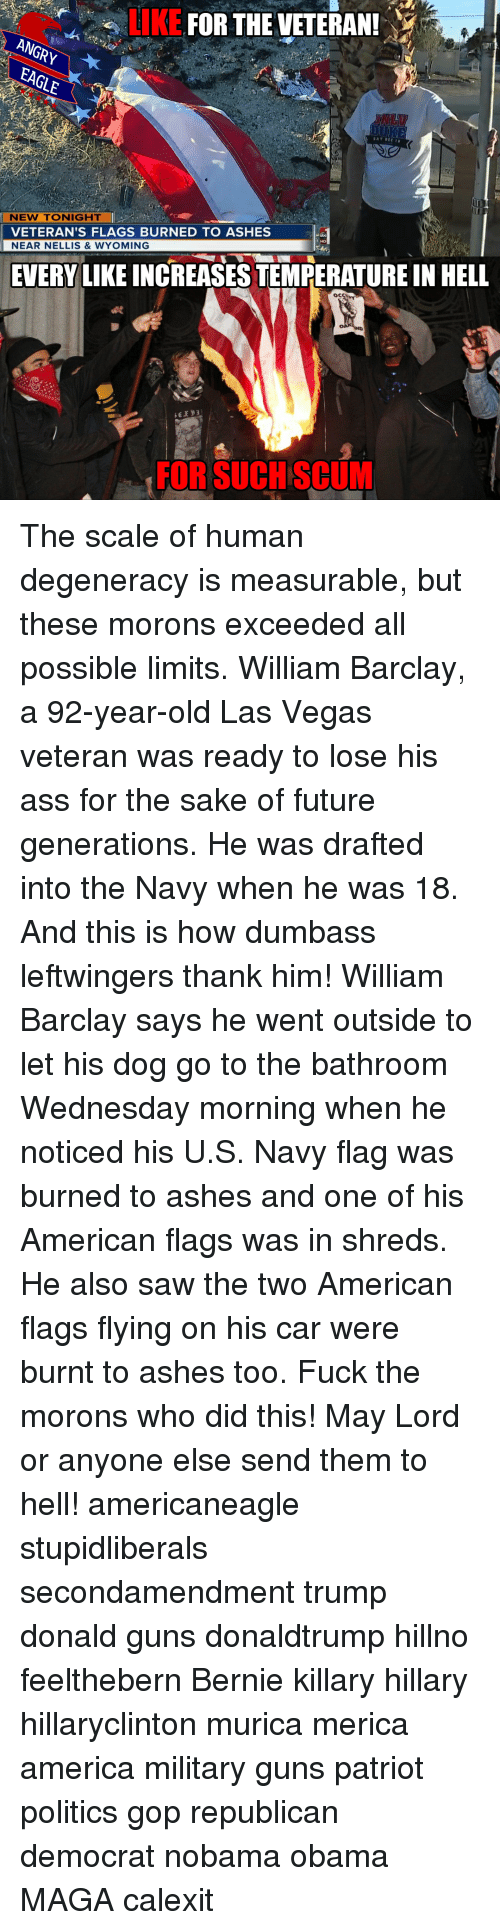 America, Ass, and Future: LIKE  FOR THE VETERAN!  ANGRy  NEW TONIGHT  VETERAN'S FLAGS BURNED TO ASHES  NEAR NELLIS & WYOMING  EVERY LIKE INCREASESTEMPERATURE IN HELL  OCI  FOR SUCH SCUM The scale of human degeneracy is measurable, but these morons exceeded all possible limits. William Barclay, a 92-year-old Las Vegas veteran was ready to lose his ass for the sake of future generations. He was drafted into the Navy when he was 18. And this is how dumbass leftwingers thank him! William Barclay says he went outside to let his dog go to the bathroom Wednesday morning when he noticed his U.S. Navy flag was burned to ashes and one of his American flags was in shreds. He also saw the two American flags flying on his car were burnt to ashes too. Fuck the morons who did this! May Lord or anyone else send them to hell! americaneagle stupidliberals secondamendment trump donald guns donaldtrump hillno feelthebern Bernie killary hillary hillaryclinton murica merica america military guns patriot politics gop republican democrat nobama obama MAGA calexit